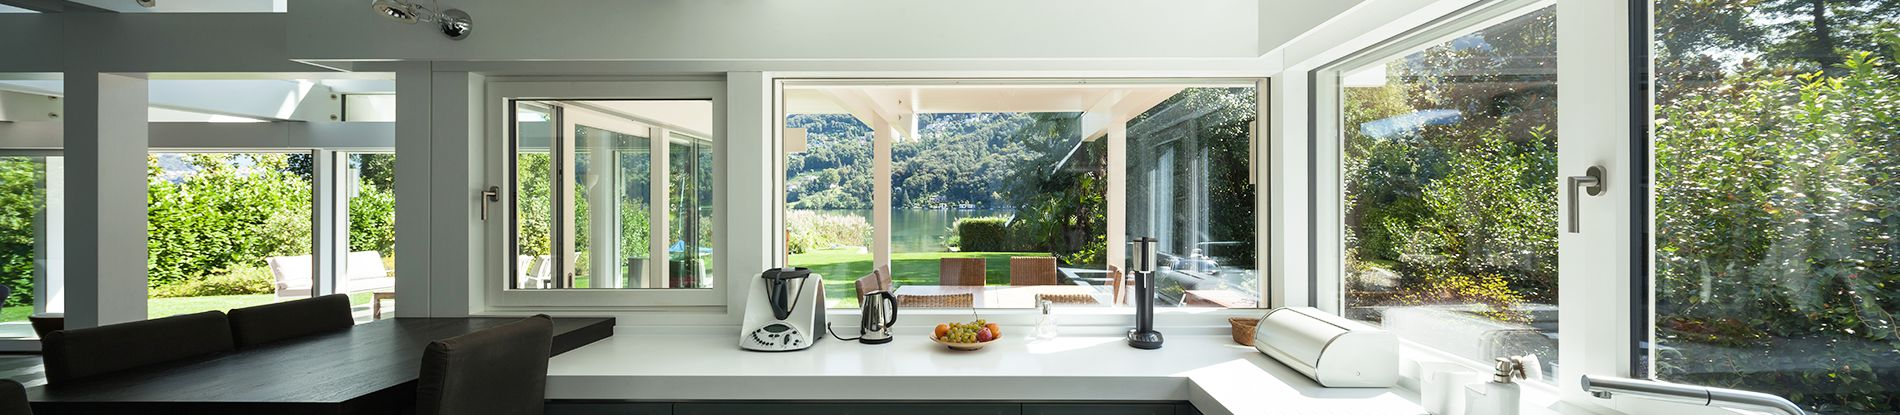 Kitchen Windows Modern And Easy To Care For Neuffer